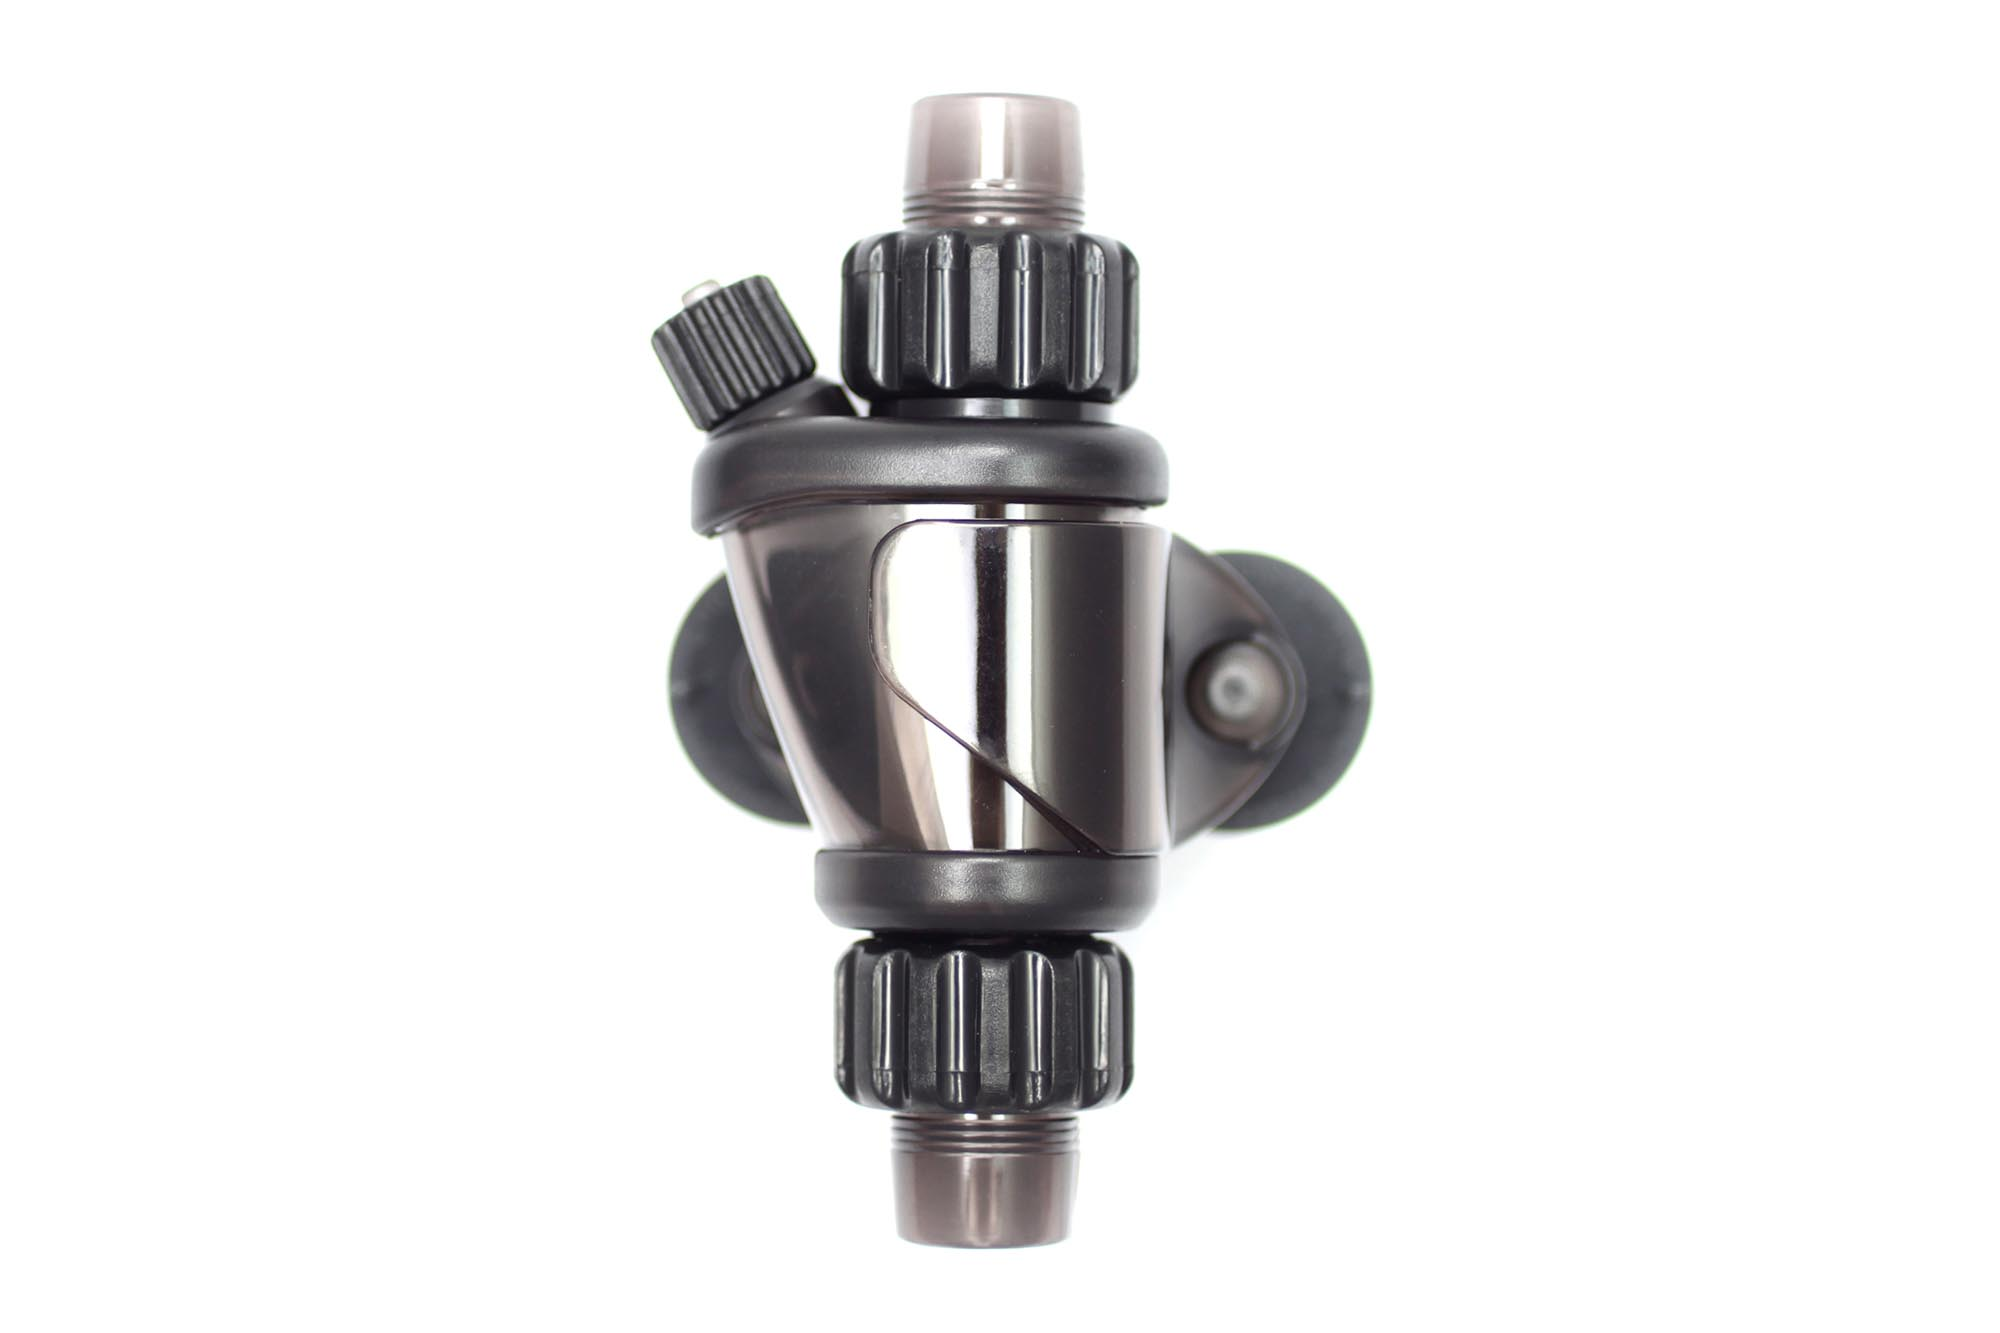 UP Inline Atomizer CO2 Diffuser - for 16/22mm Hose